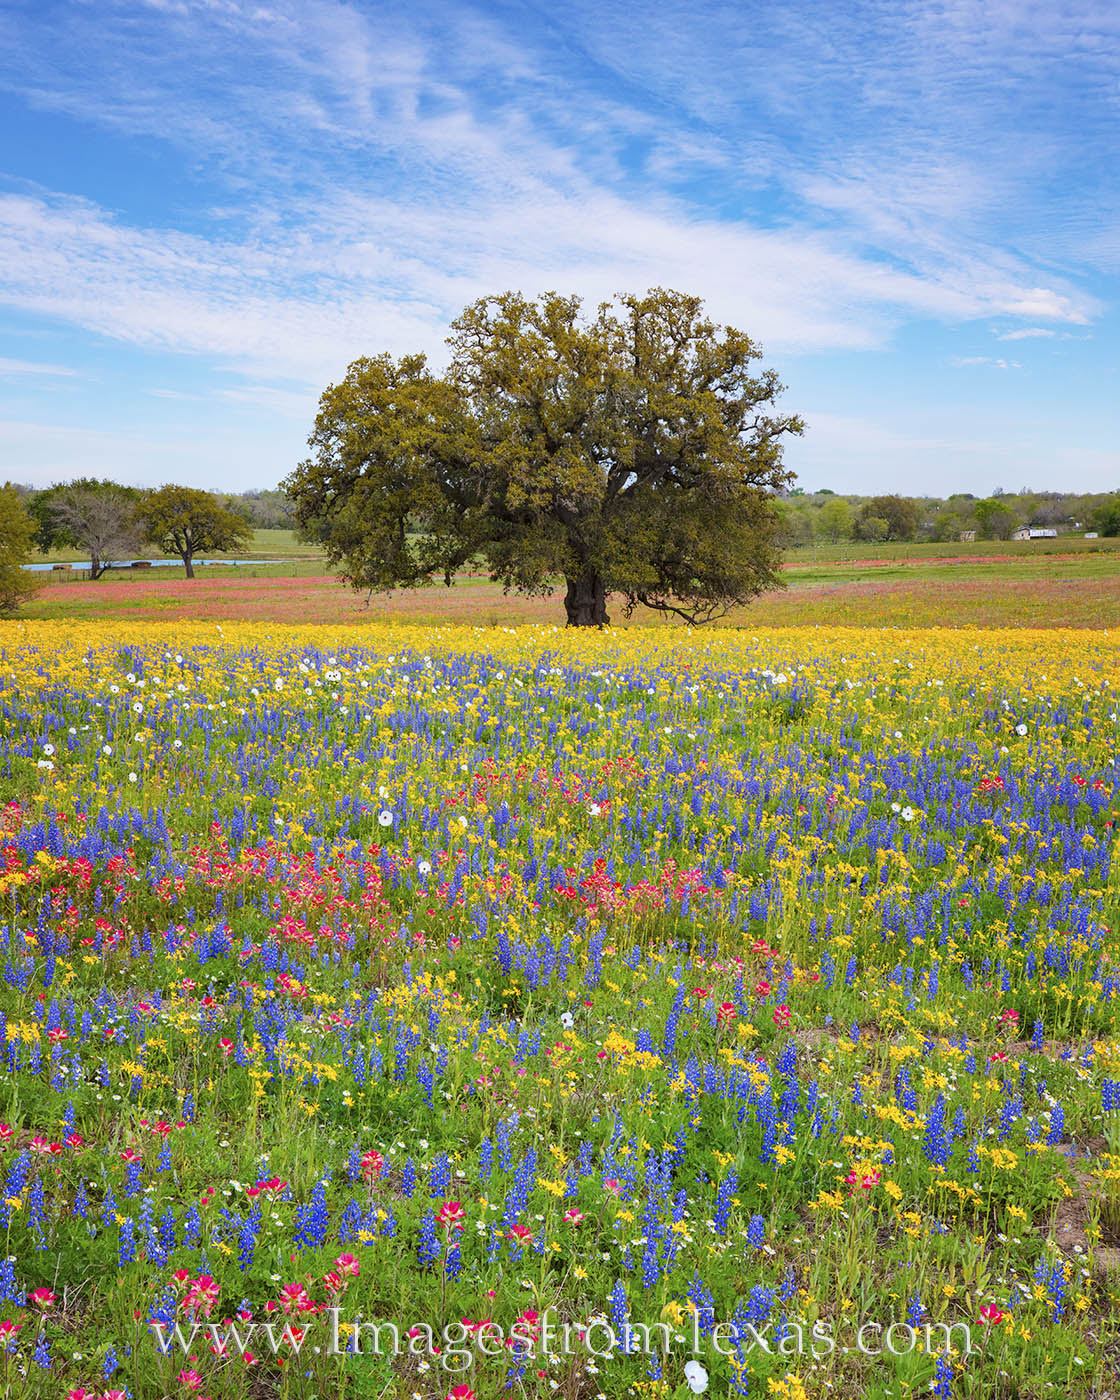 Atascosa county, poteet, wildflowers, bluebonnets, paintbrush, afternoon, color, red, blue, yellow, texas wildflowers, south texas, san antonio, spring, spring flowers, wheeler road, photo